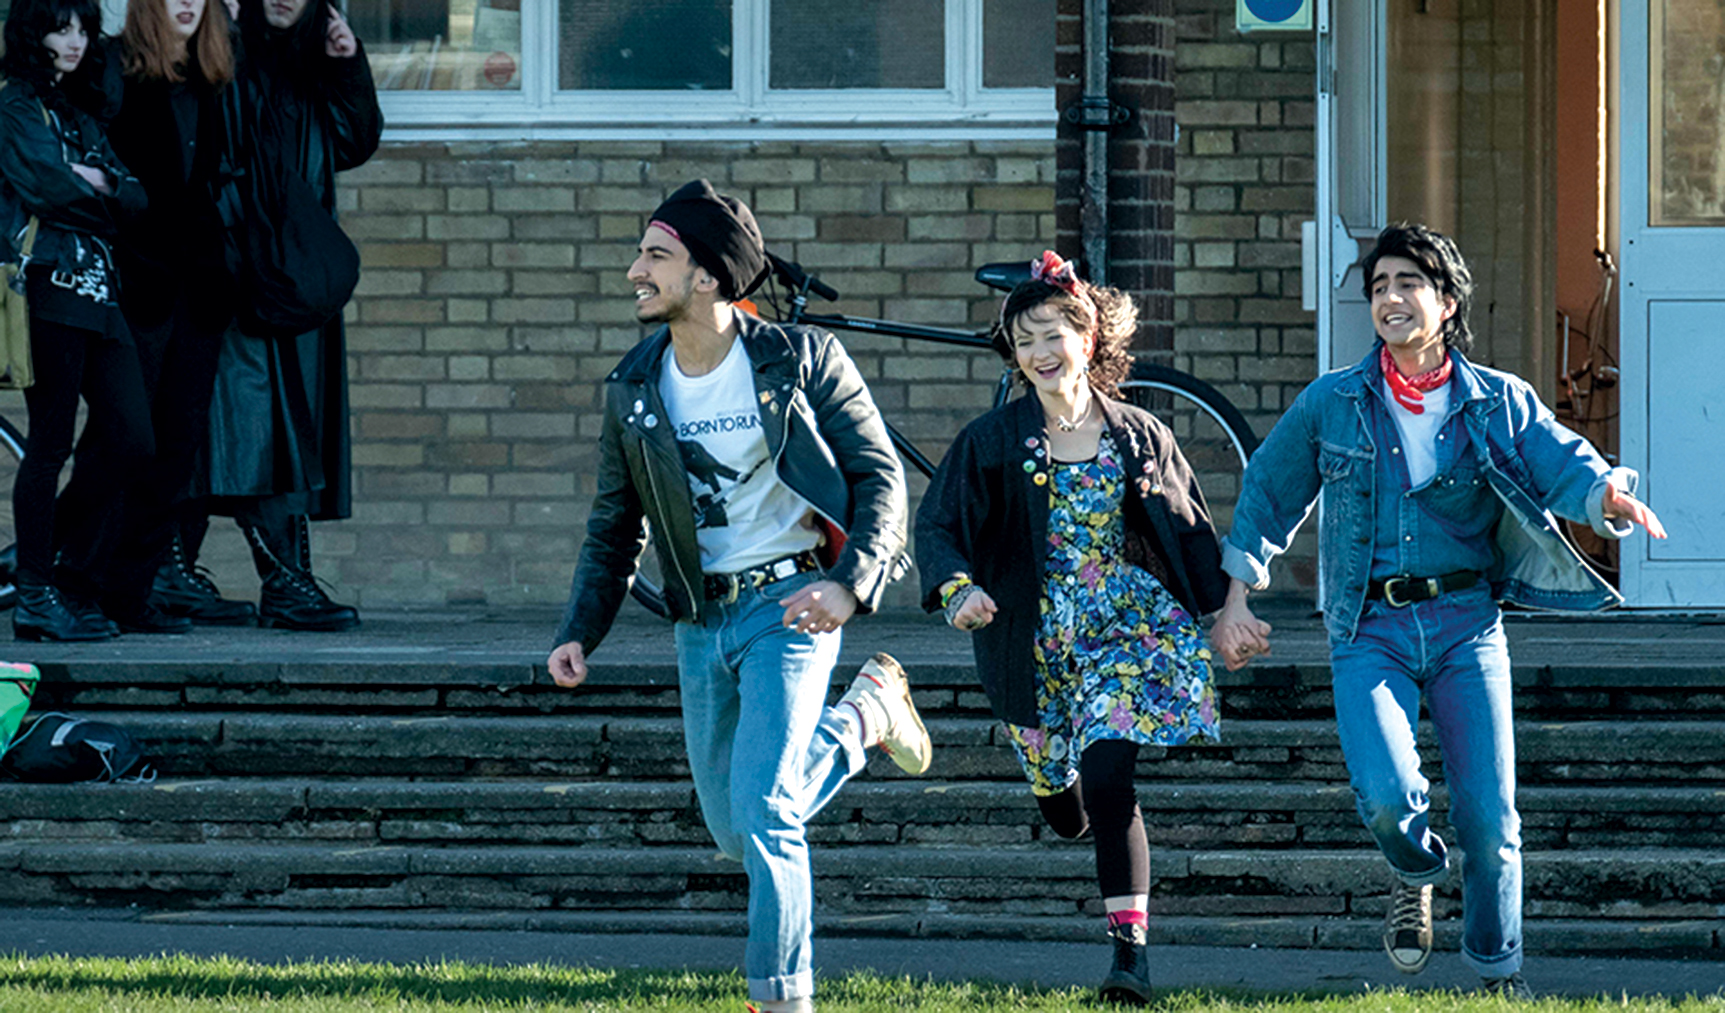 <p>From the writer-director that brought us &quot;Bend It Like Beckham&quot;, this fantastical musical-comedy tells the story of a Pakistani teen living in 1987 Britain. He's struggling to fit in with his friends and his family when he discovers the music of Bruce Springsteen, and it is like his world goes form black and white to glorious technicolor. More than anything, he was &quot;born to run&quot;. It's a film that will have you gleefully dancing in your seat. (Image: SIFF)</p>